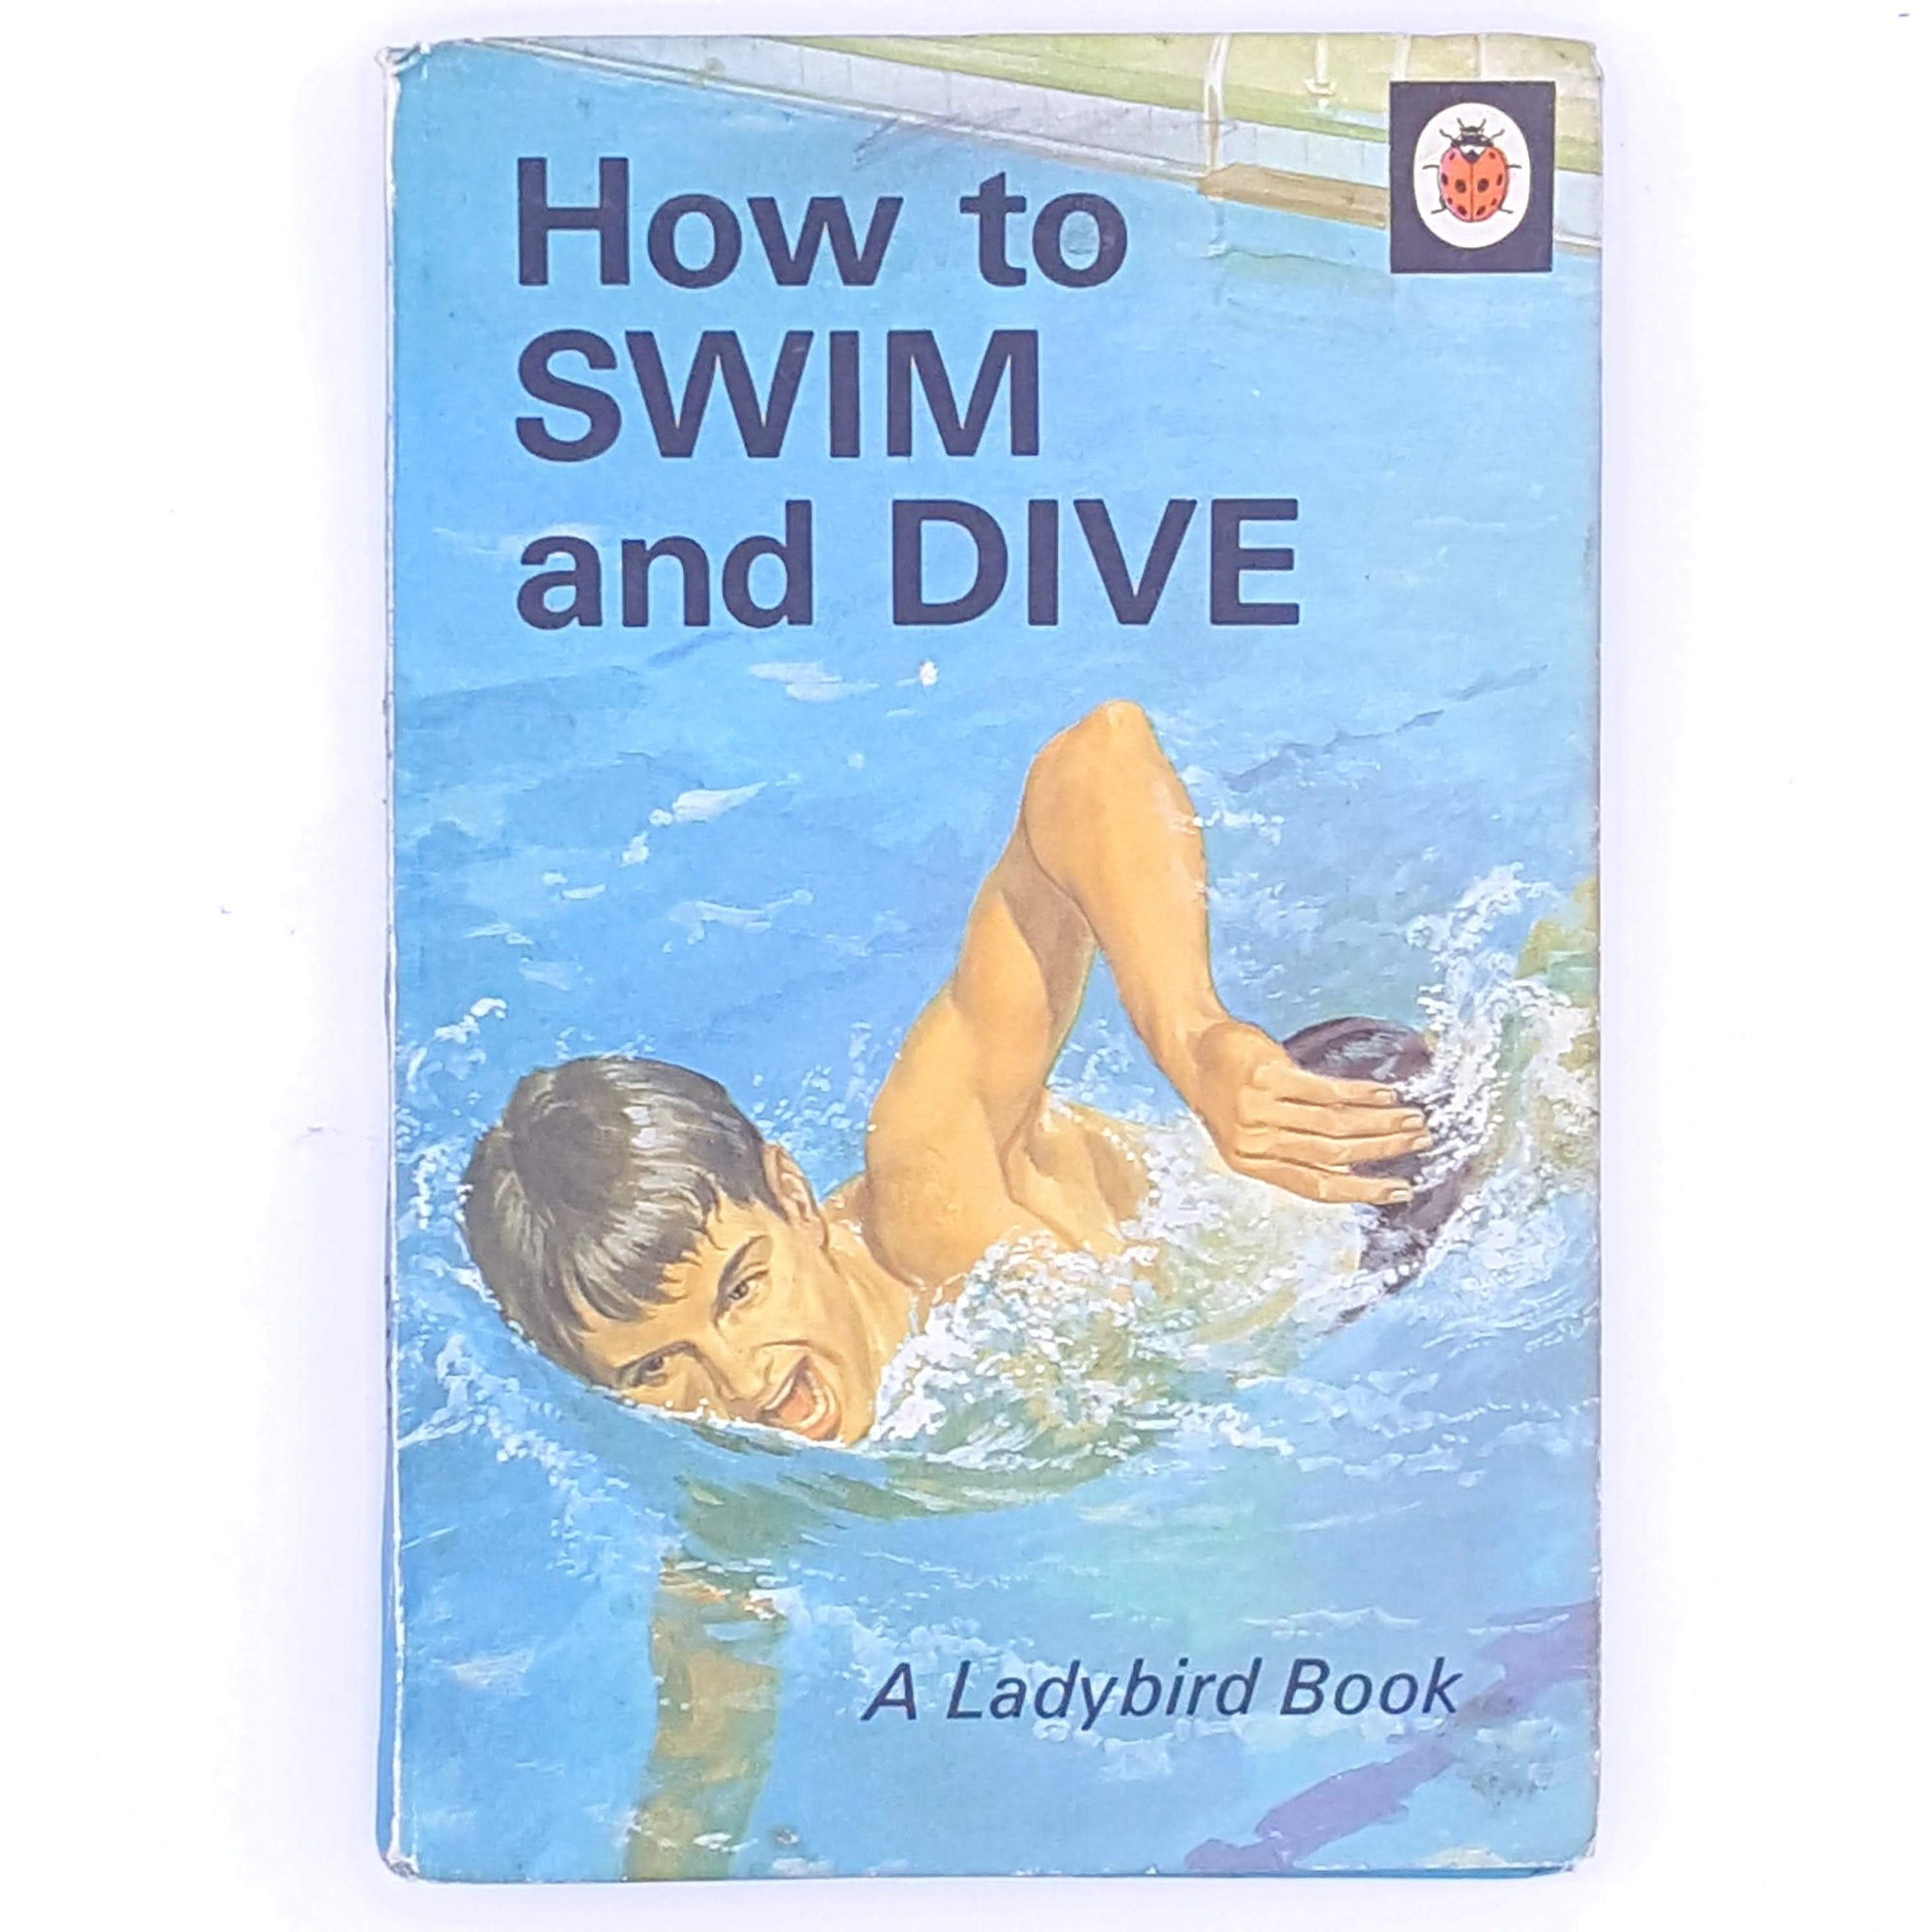 vintage-swimming-classic-swim-ladybird-books-betterment-health-swimming-pool-patterned-decorative-thrift-christmas-gifts-wellbeing-antique-old-country-house-library-water-